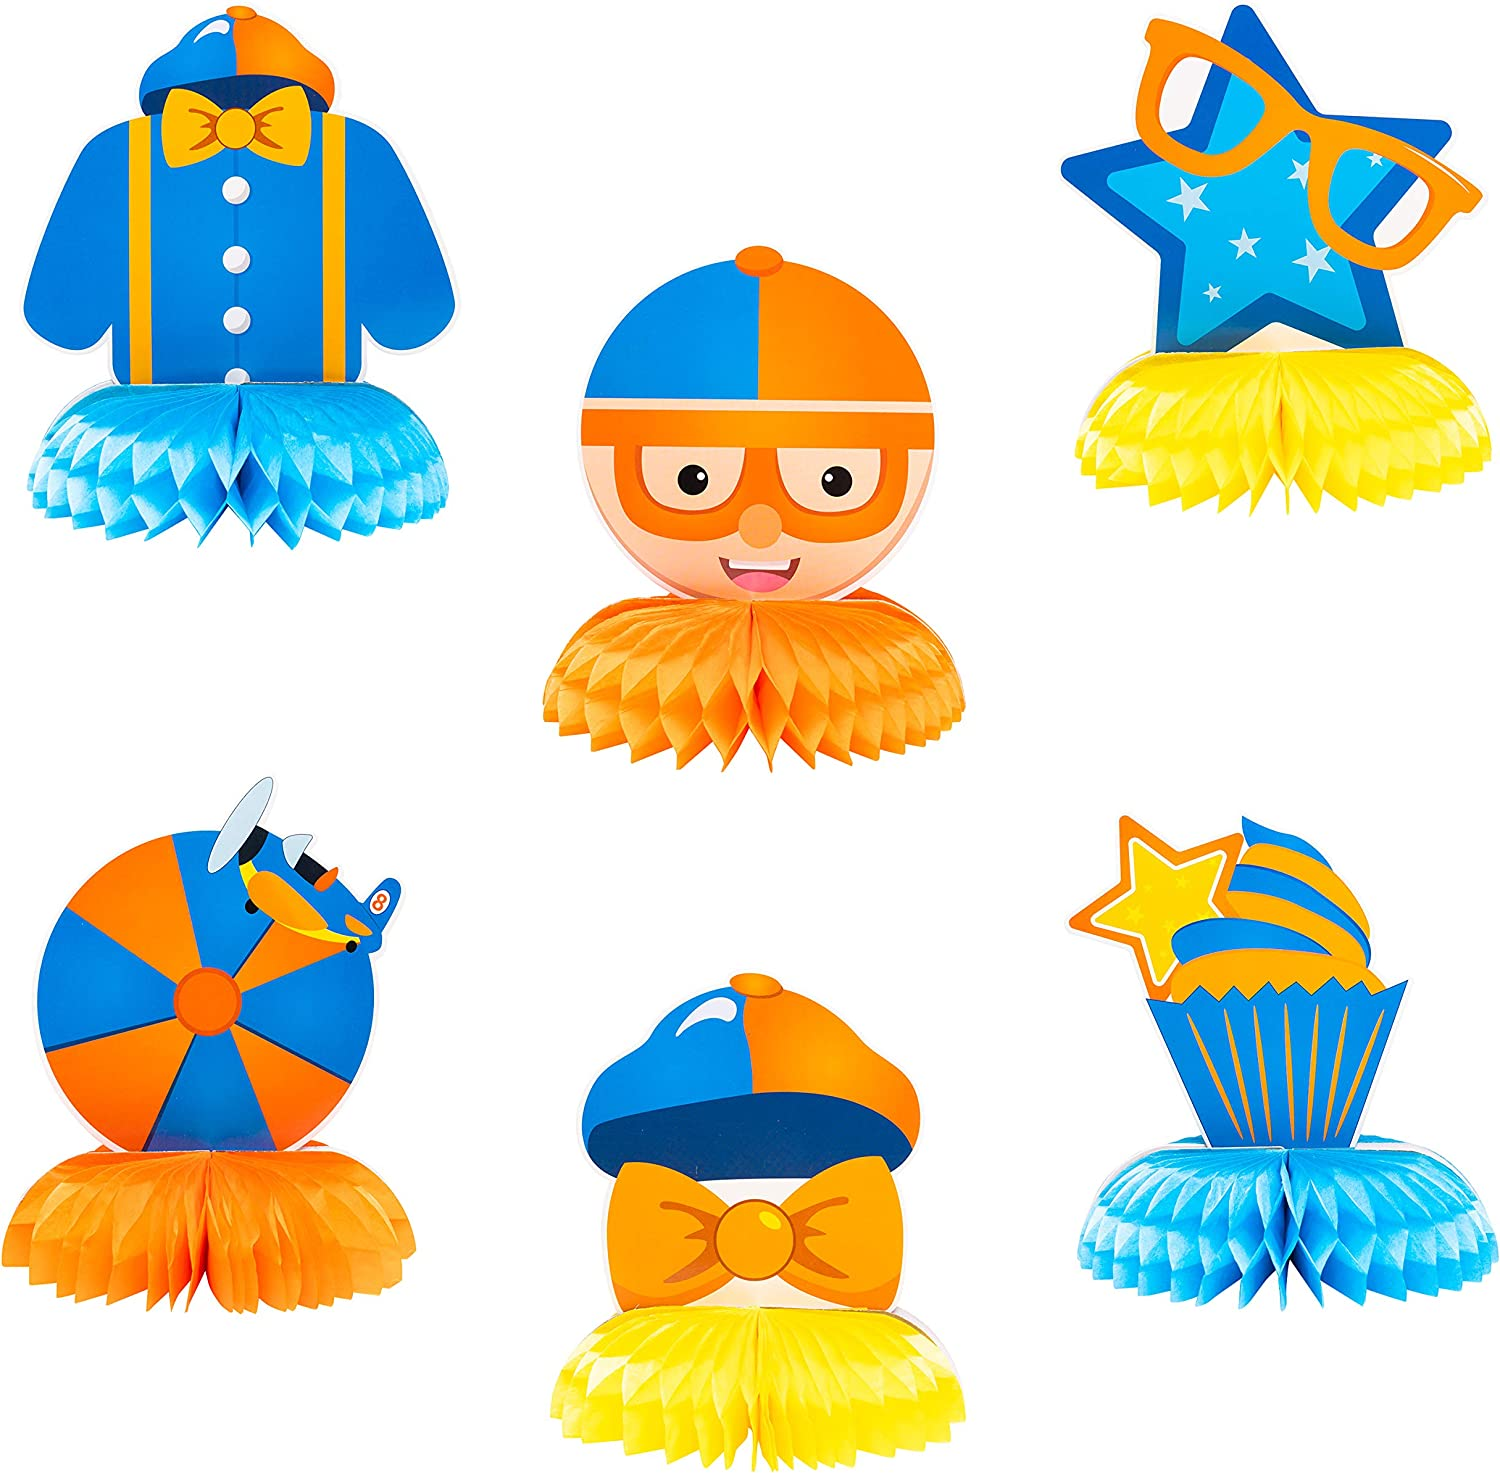 Haooryx 6Pcs Blippi Honeycomb Centerpieces Table Decorations 3D Honeycomb Balls for Kids Blippi Theme Birthday Party Supplies Room Decor Baby Shower Cake Topper Photo Booth Props Party Favor